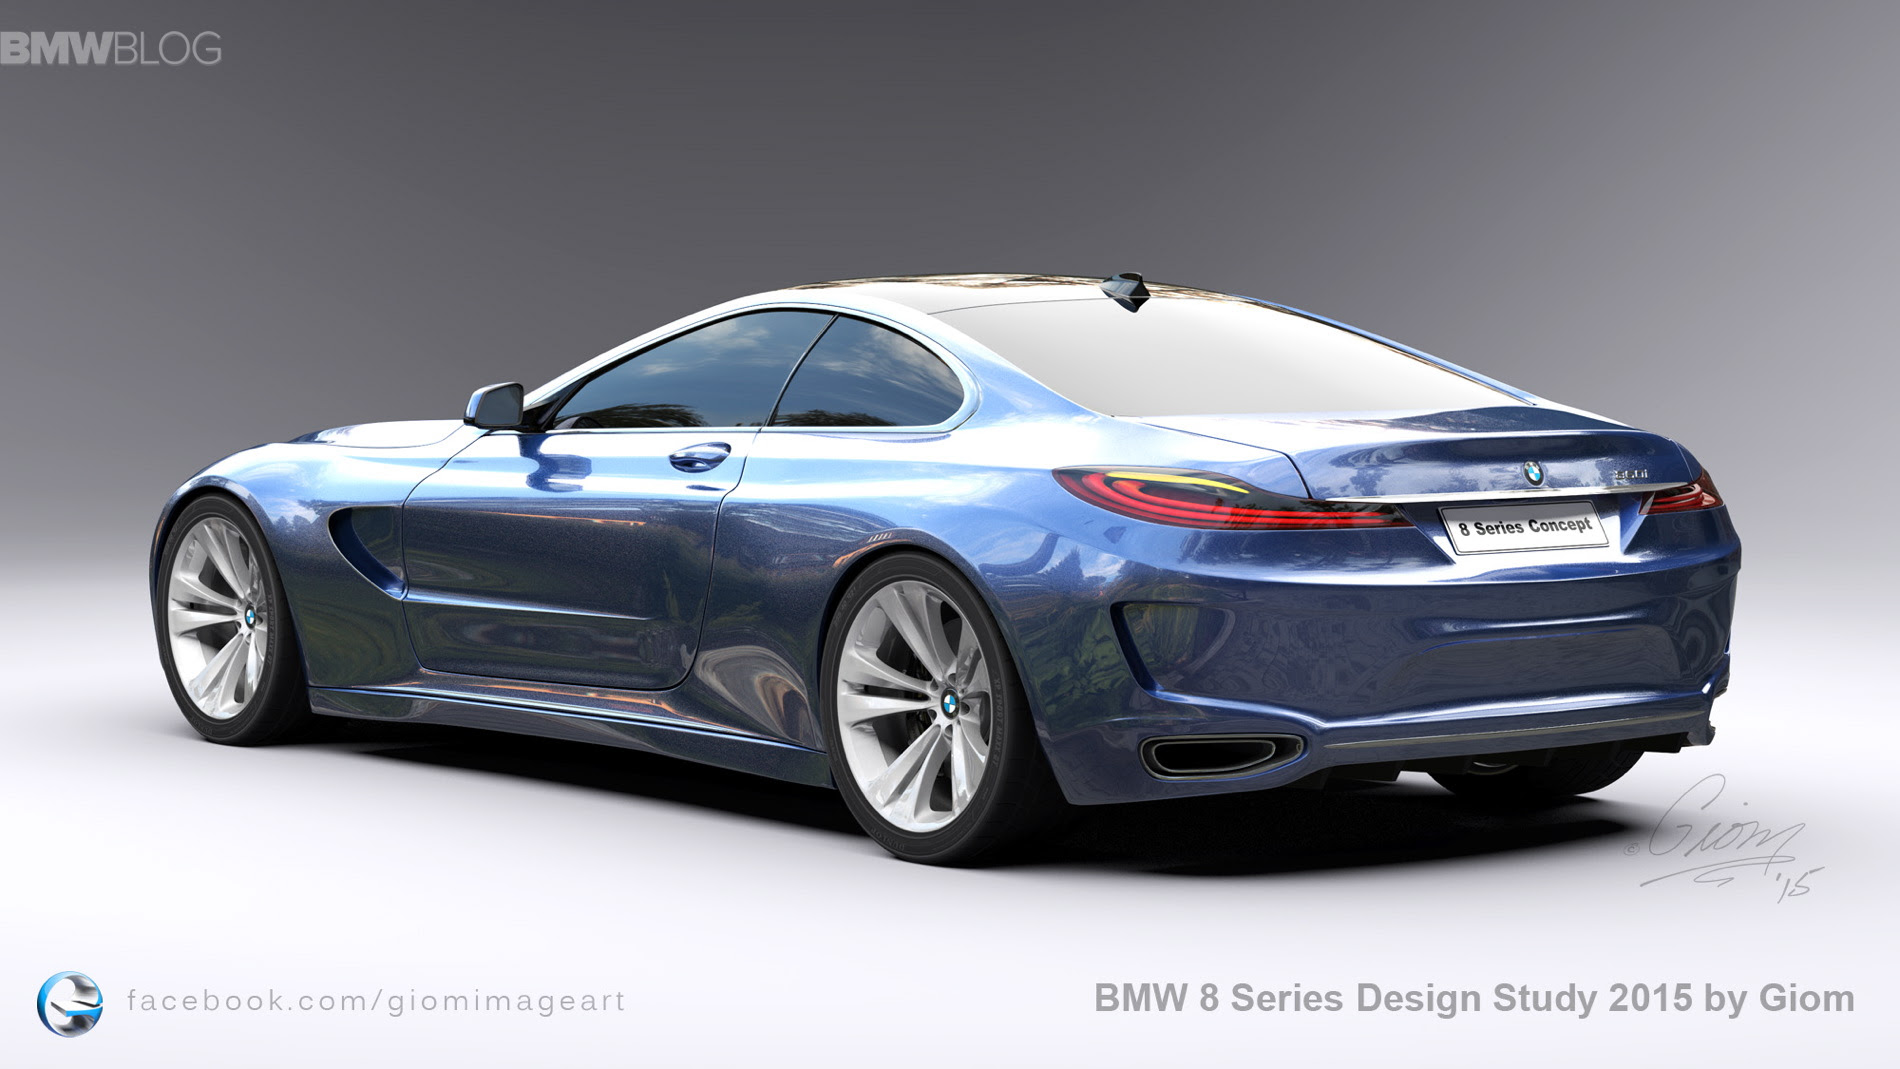 BMW 8 Series Design Study aims to revive the spirit of the legendary ...